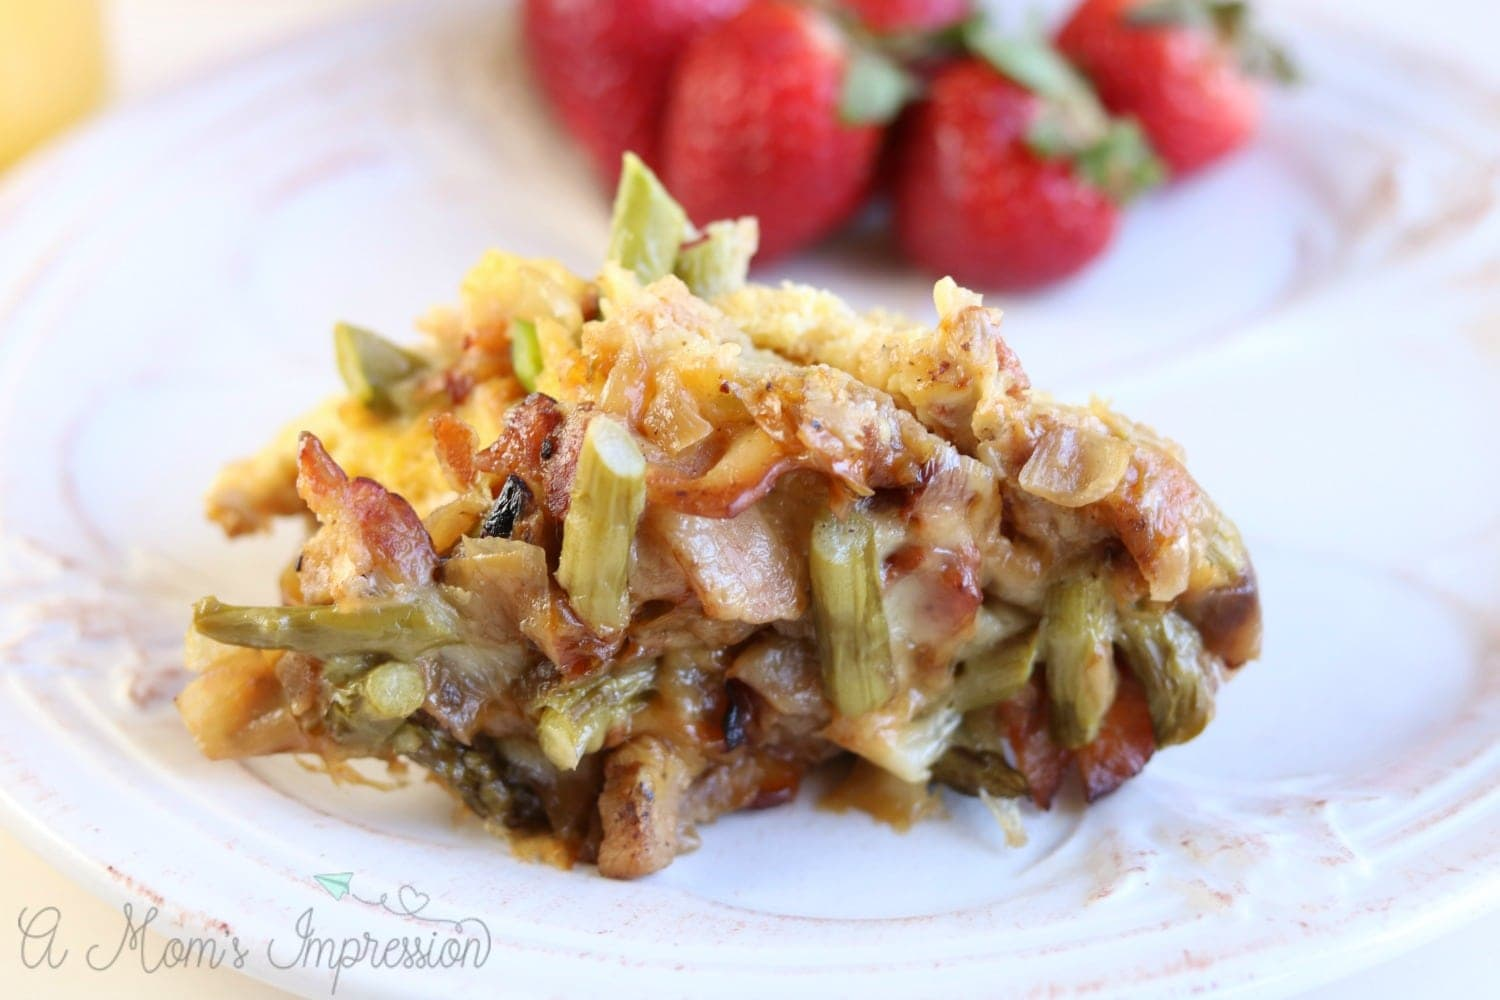 Instant Pot Breakfast Casserole with Bacon, Asparagus and Caramelized Onions